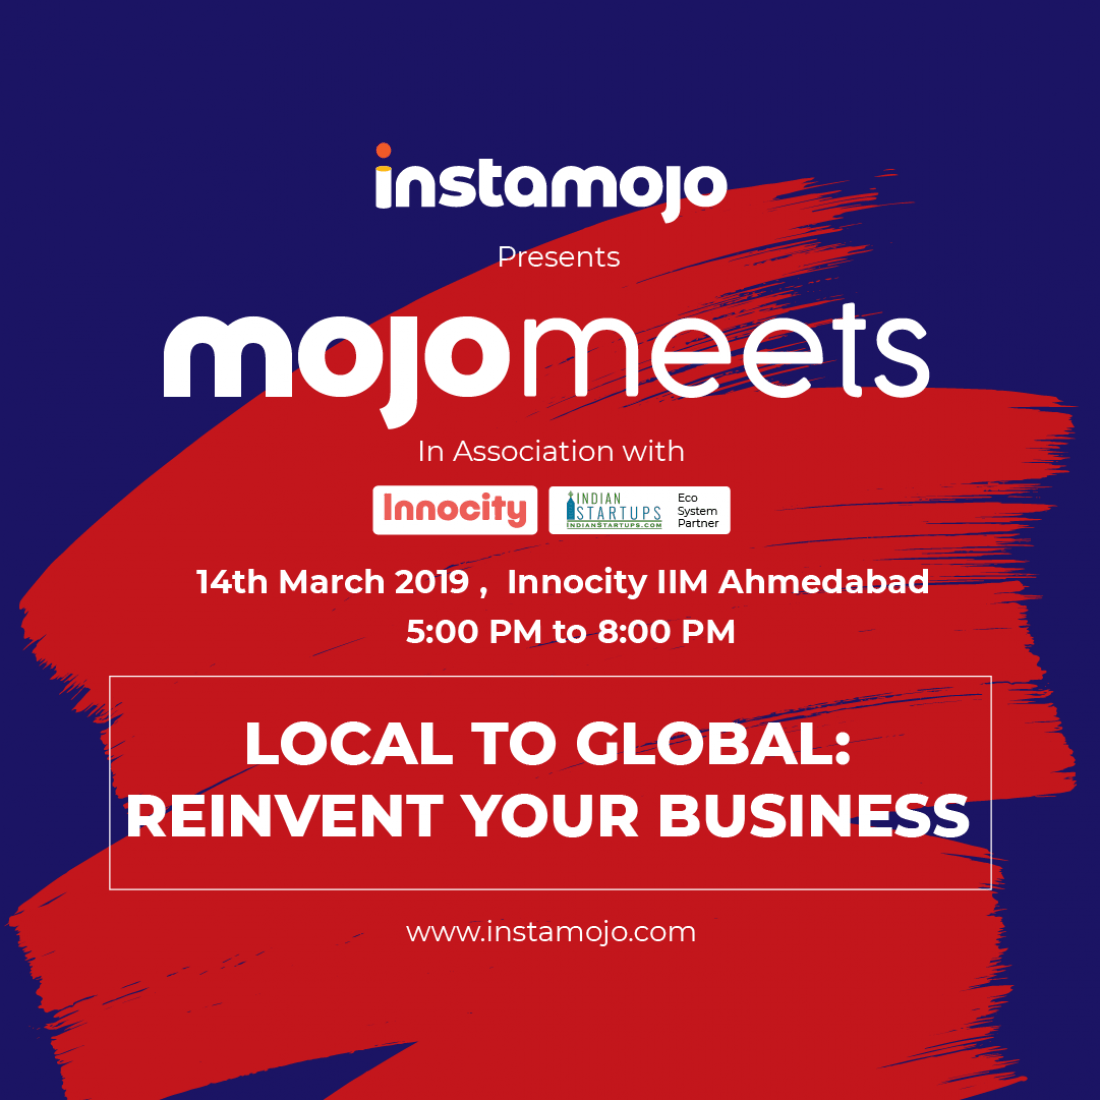 MojoMeets - Local to Global Reinvent Your Business